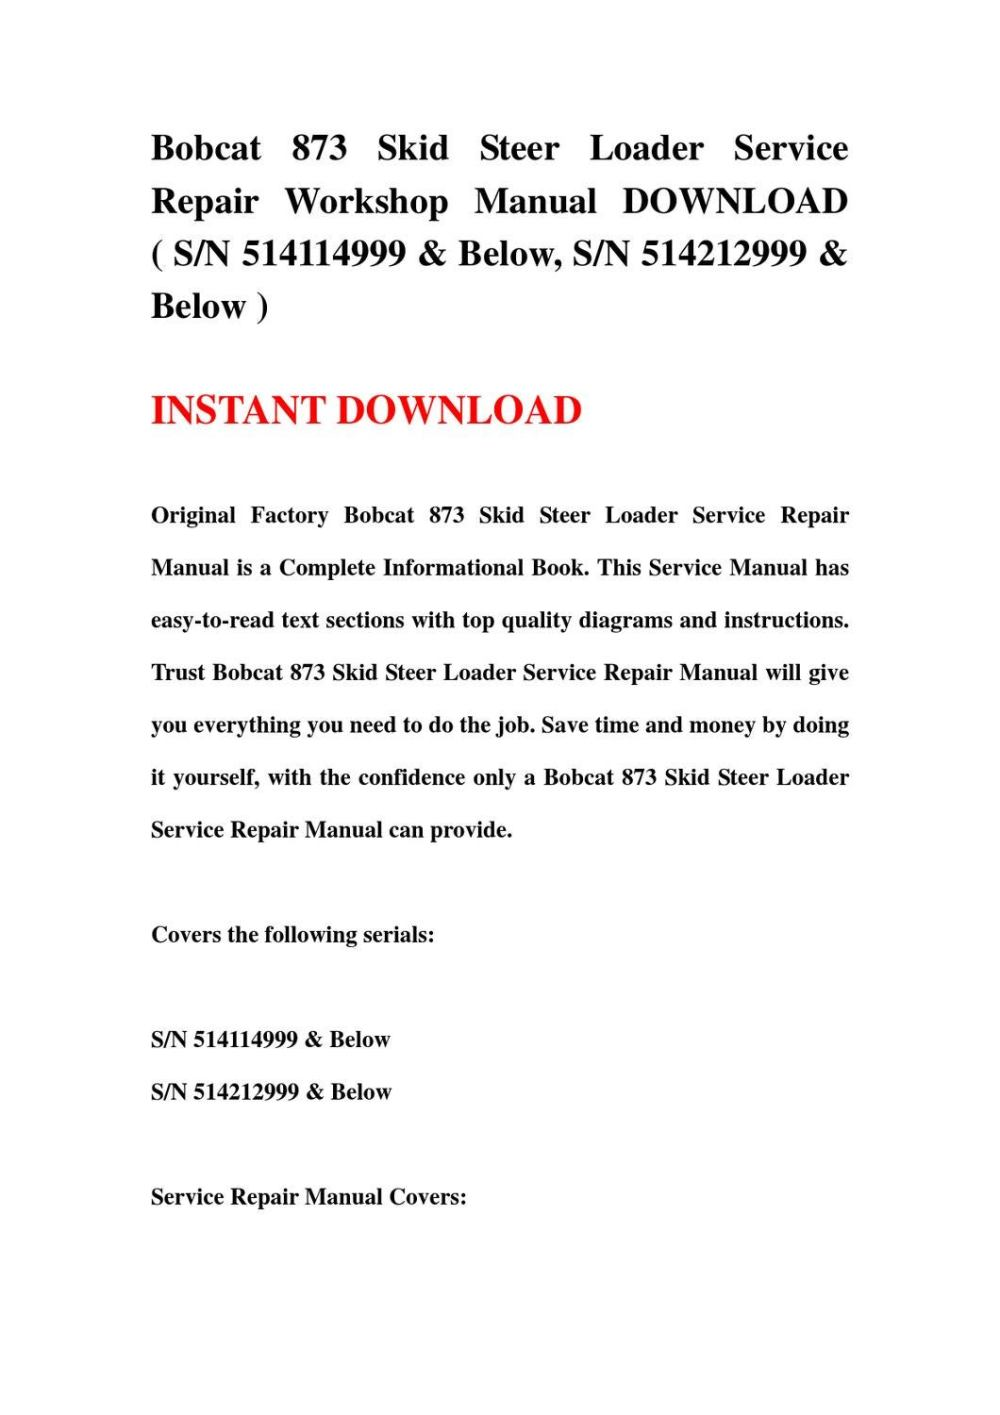 medium resolution of bobcat 873 skid steer loader service repair workshop manual download sn 514114999 below sn 5142